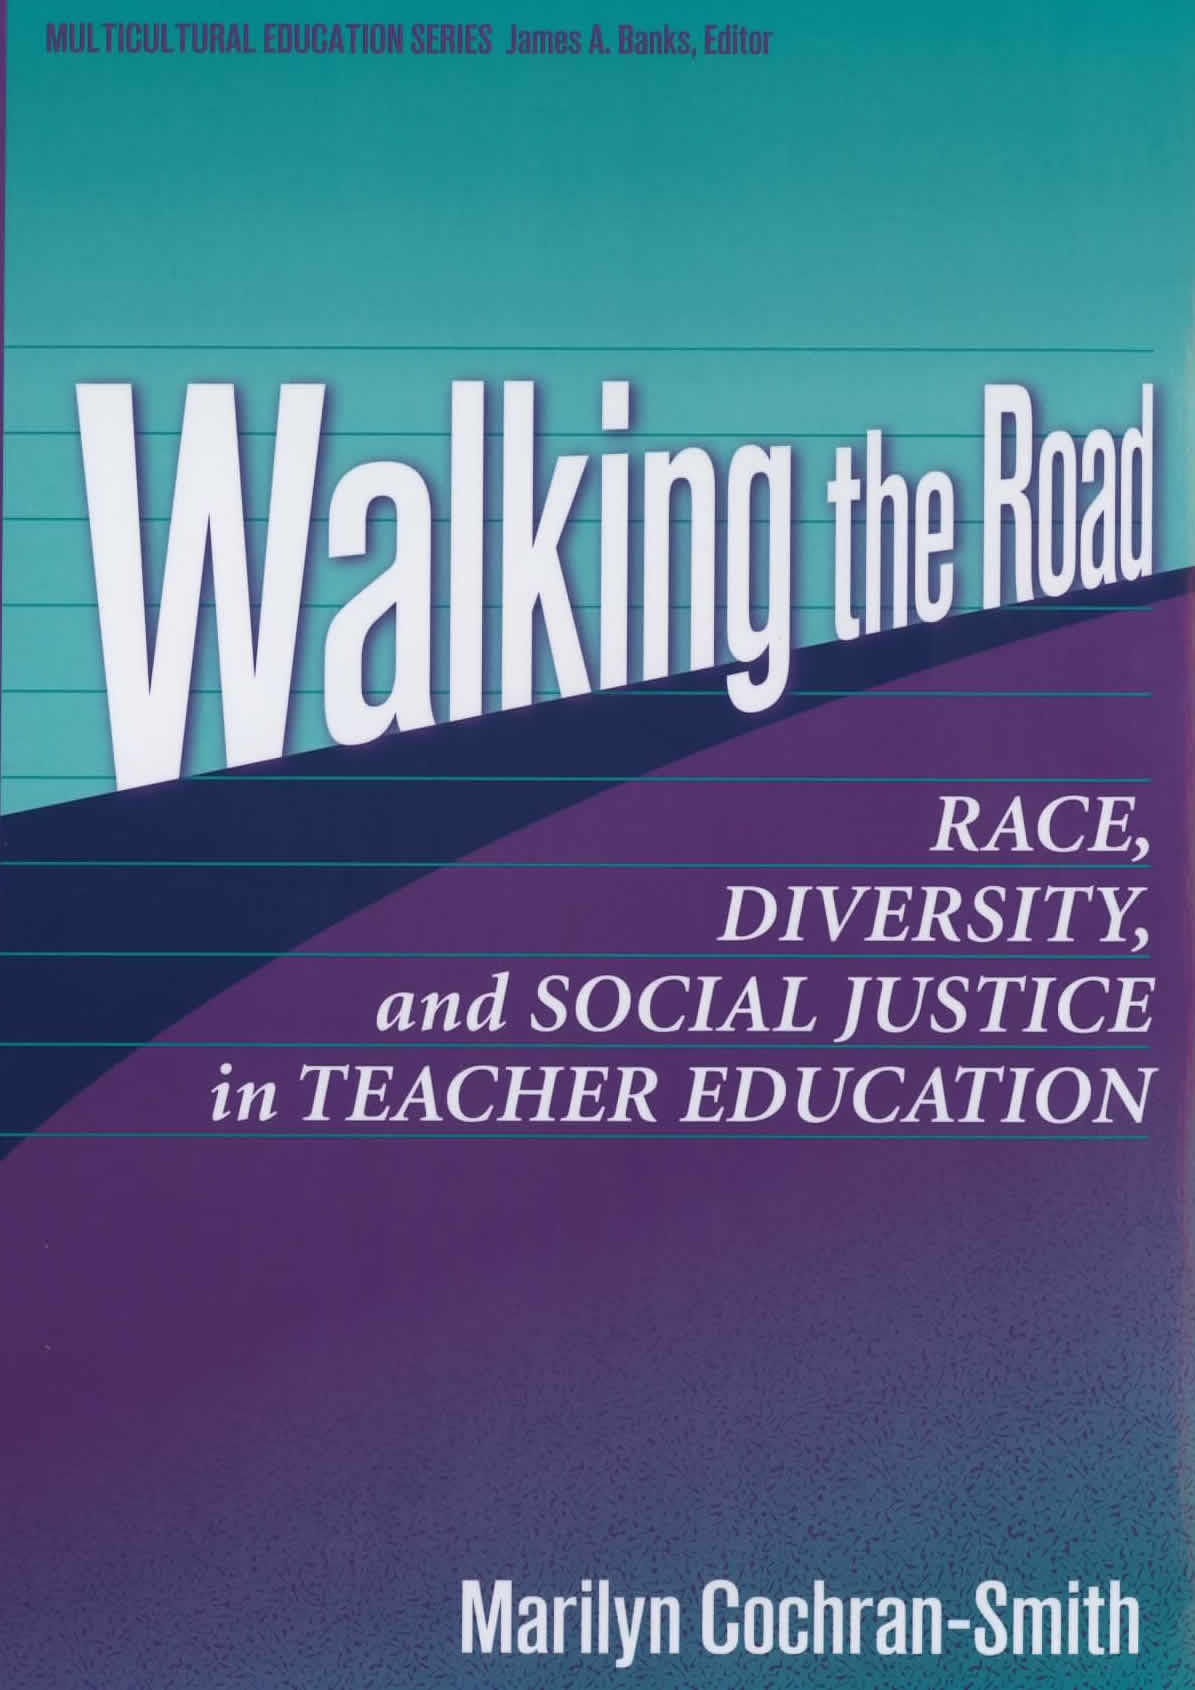 Walking the Road: Race, Diversity, and Social Justice in Teacher Education